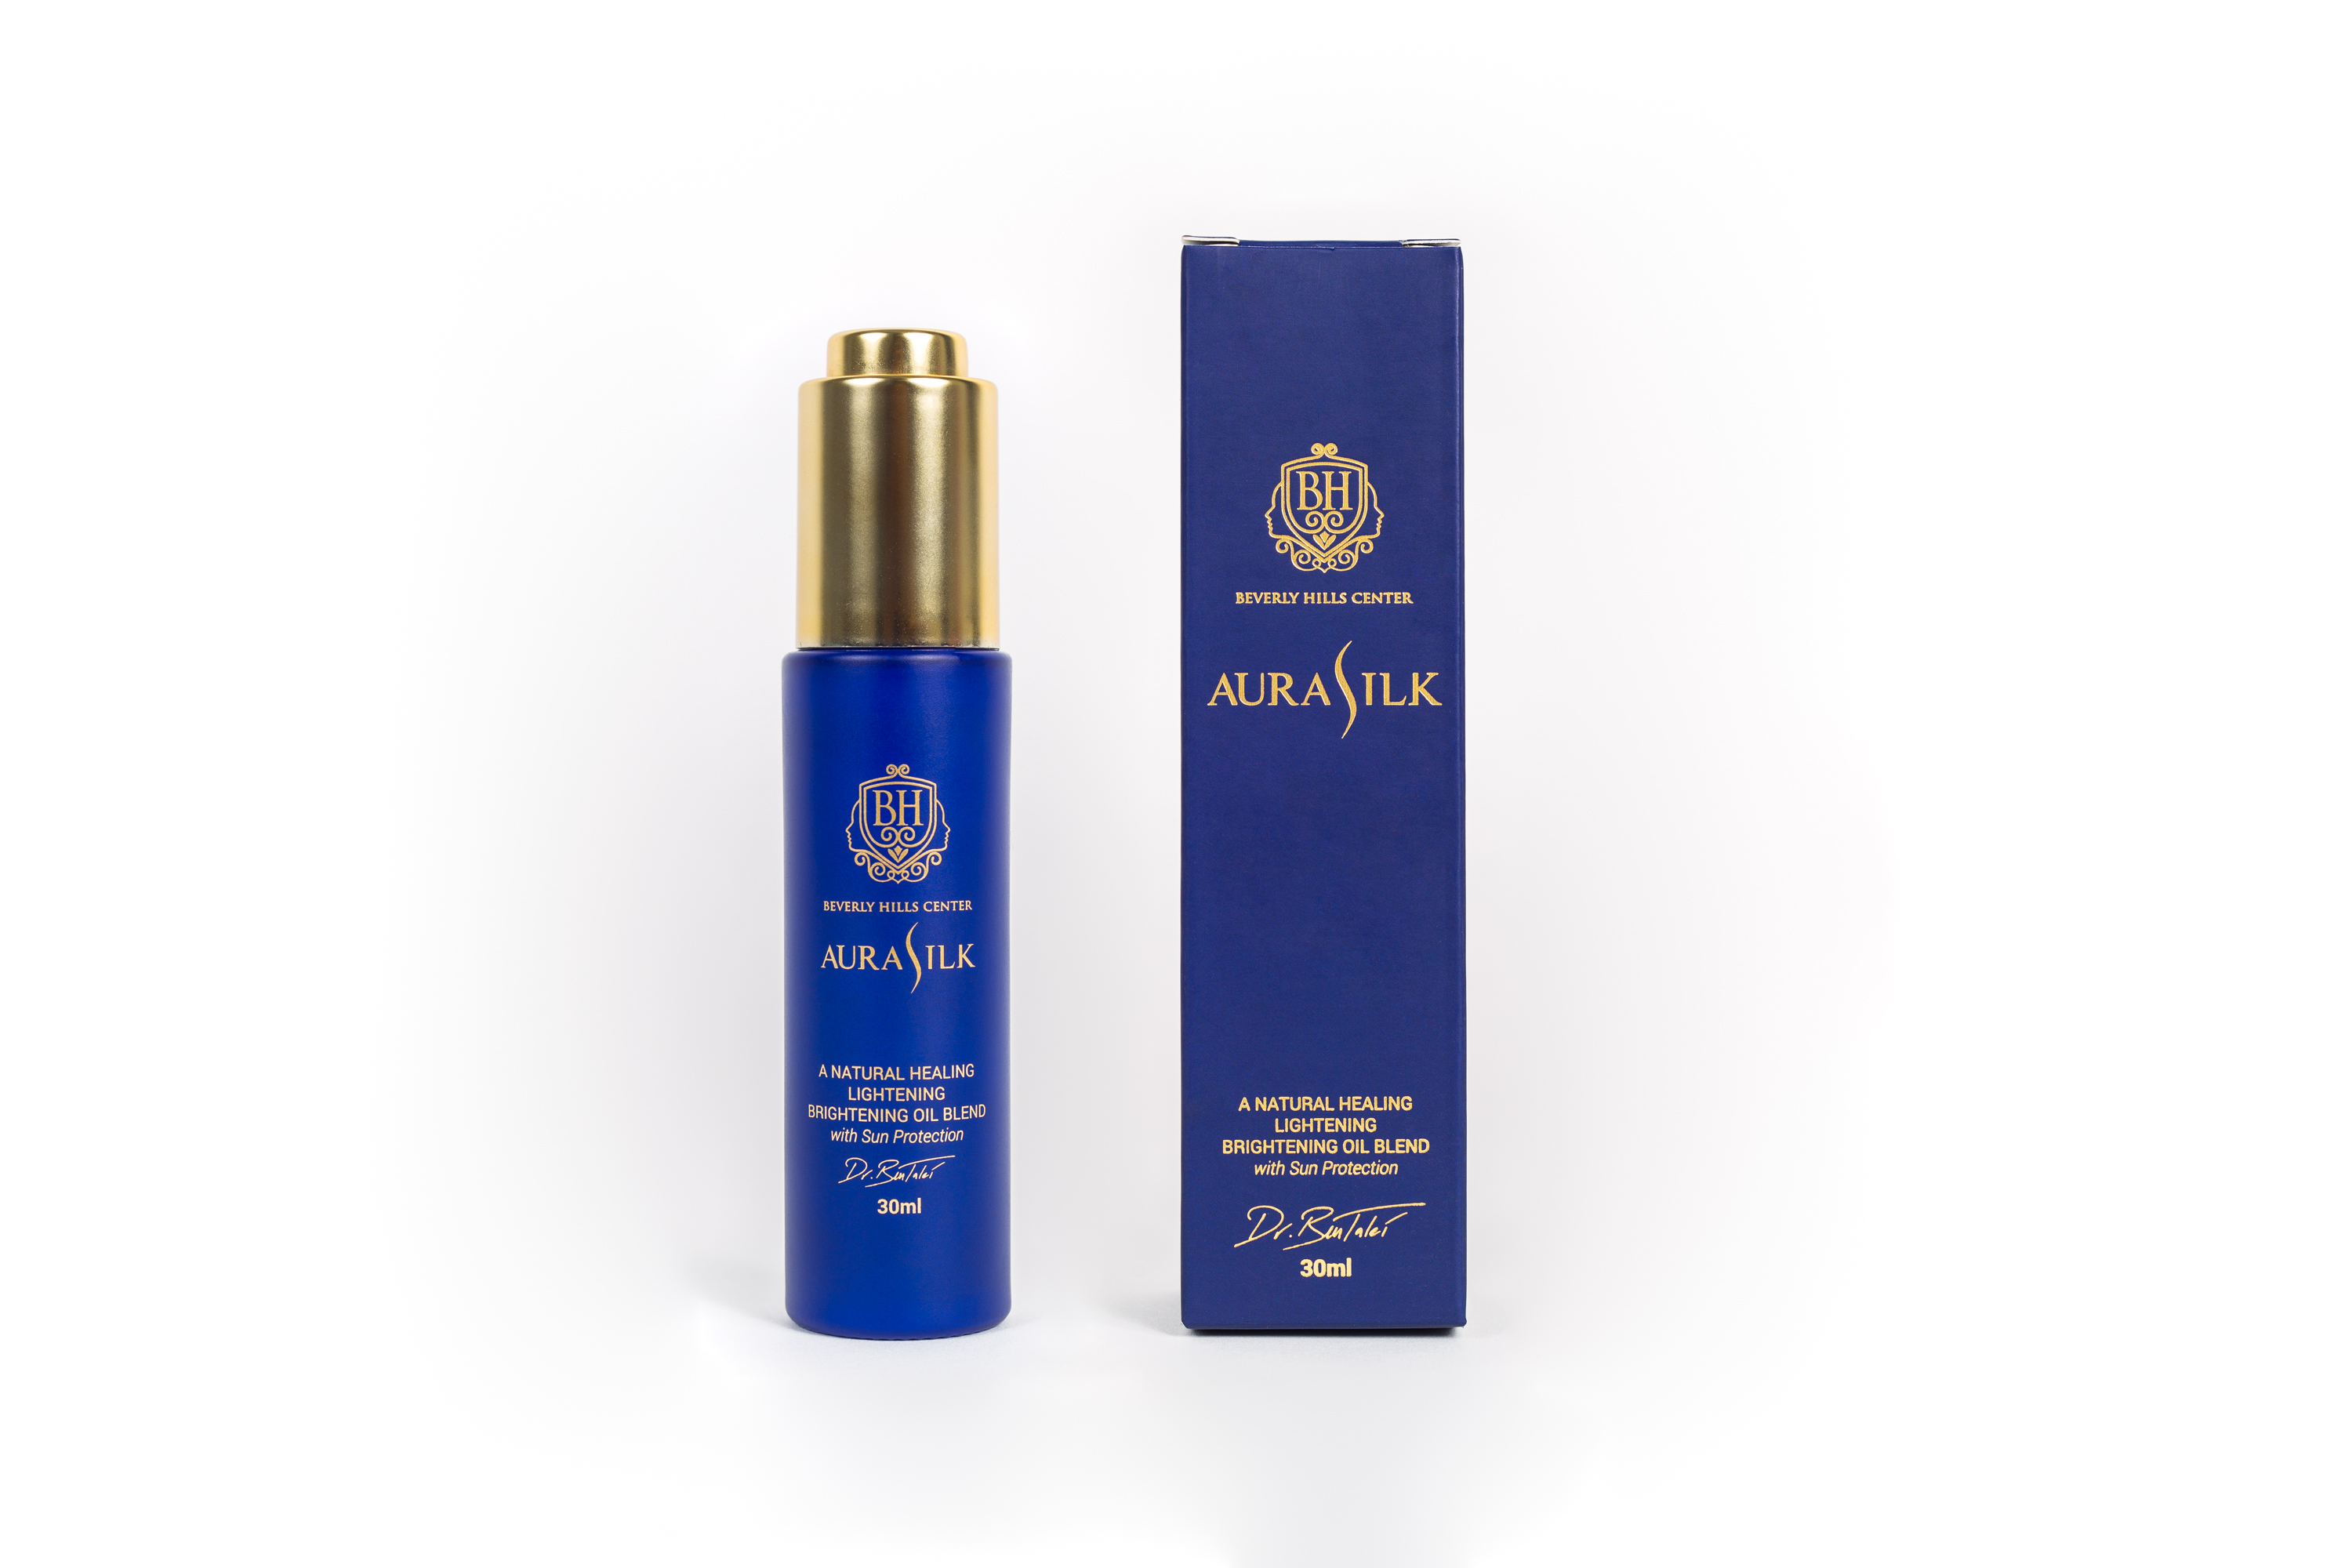 AuraSilk Face Oil